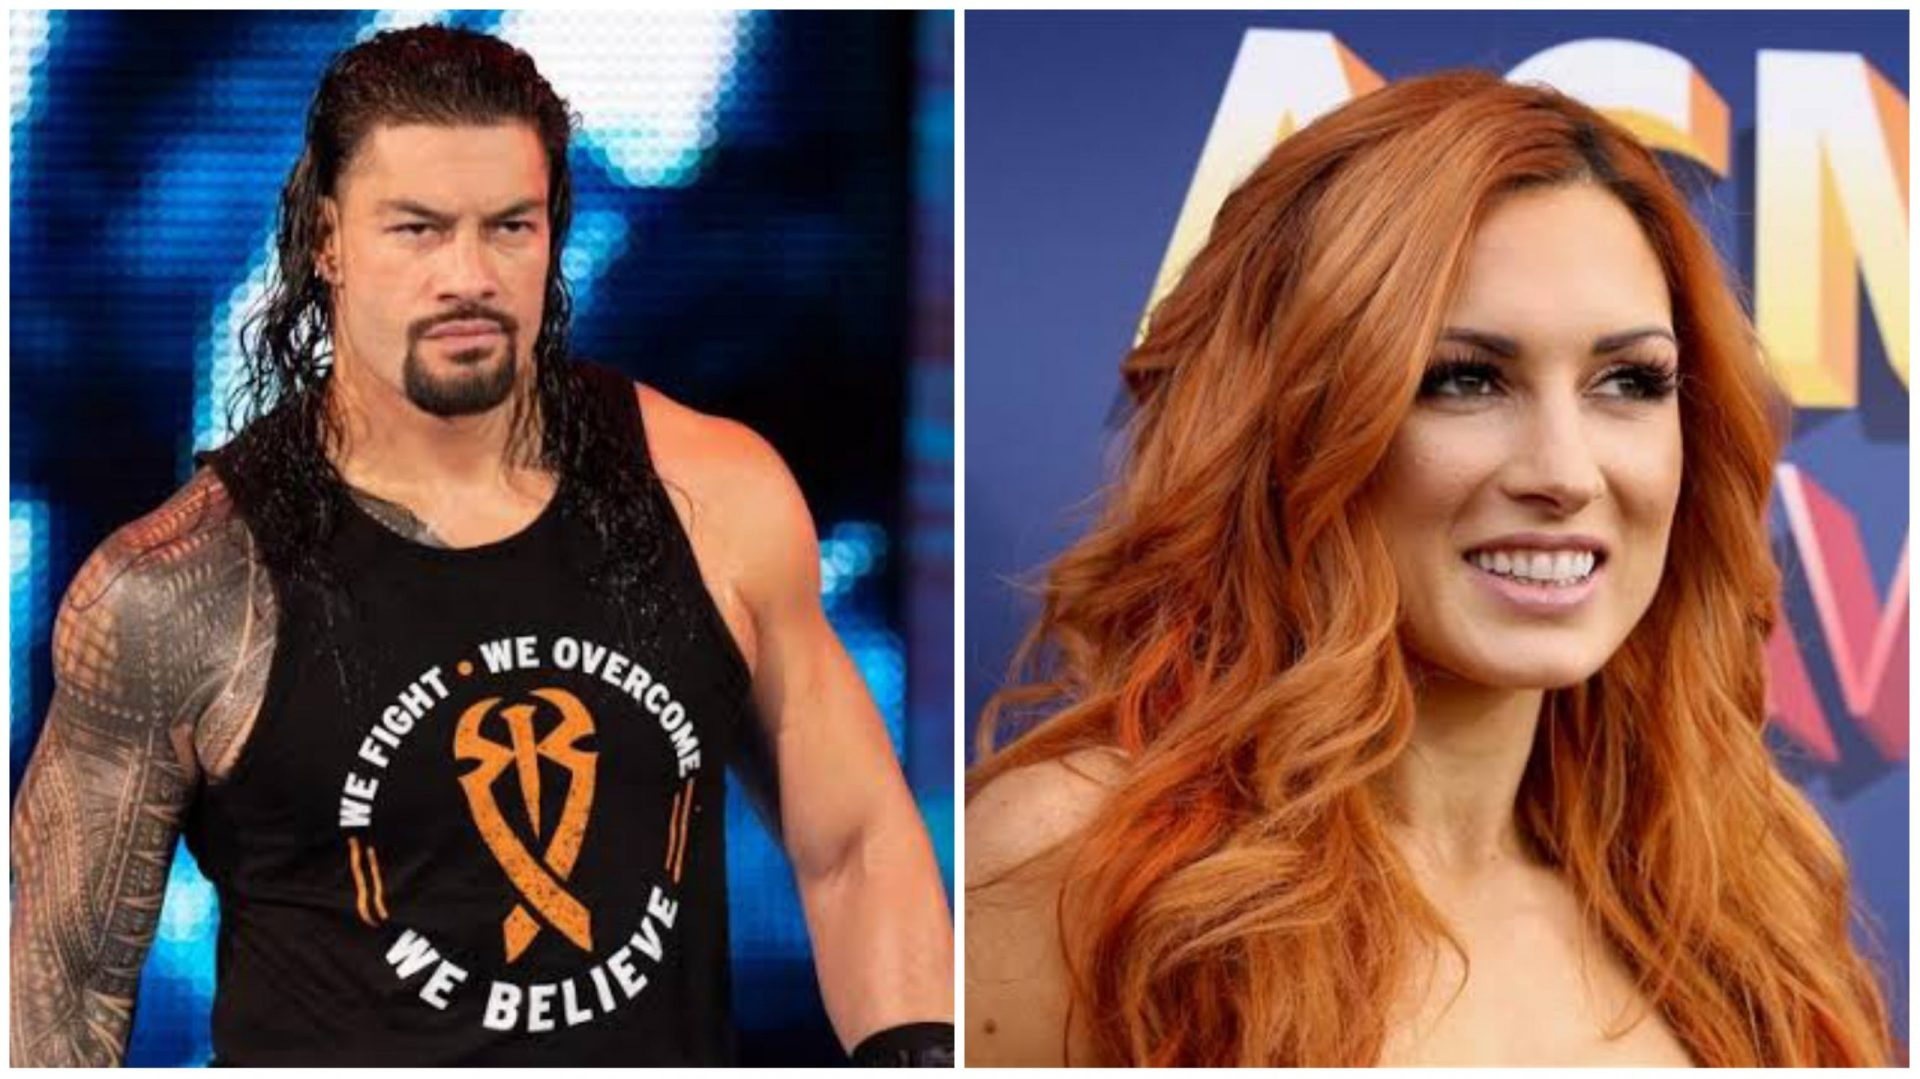 Roman Reigns becomes Tumblr's number one pro wrestler, Becky Lynch clinches 2nd spot - THE SPORTS ROOM